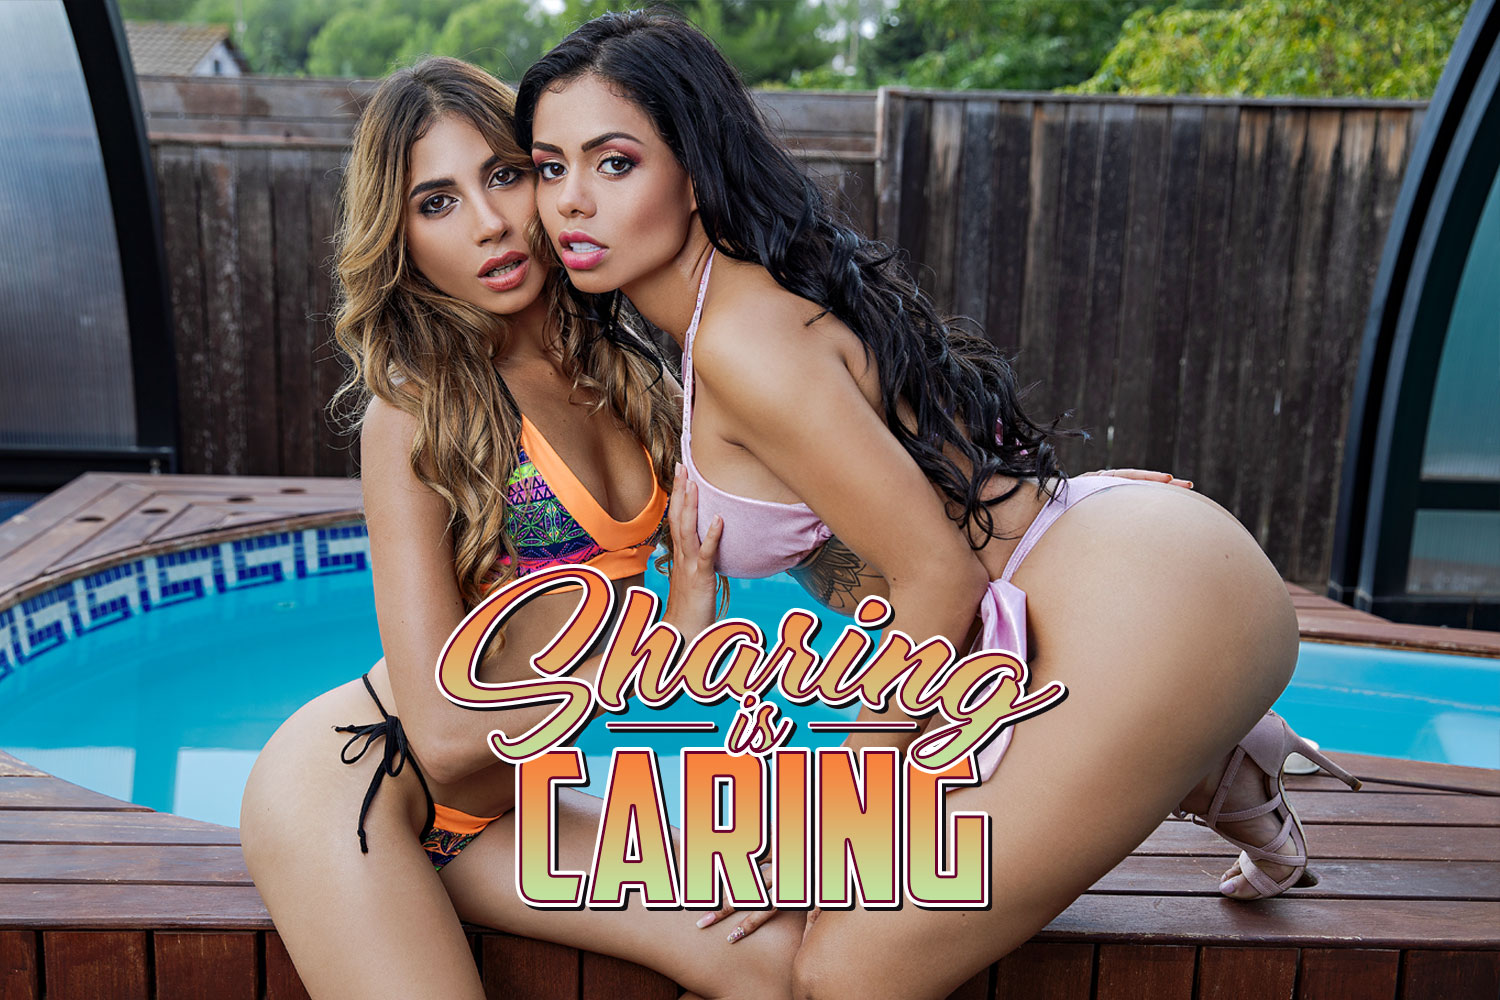 Sharing is Caring VR Porn Video